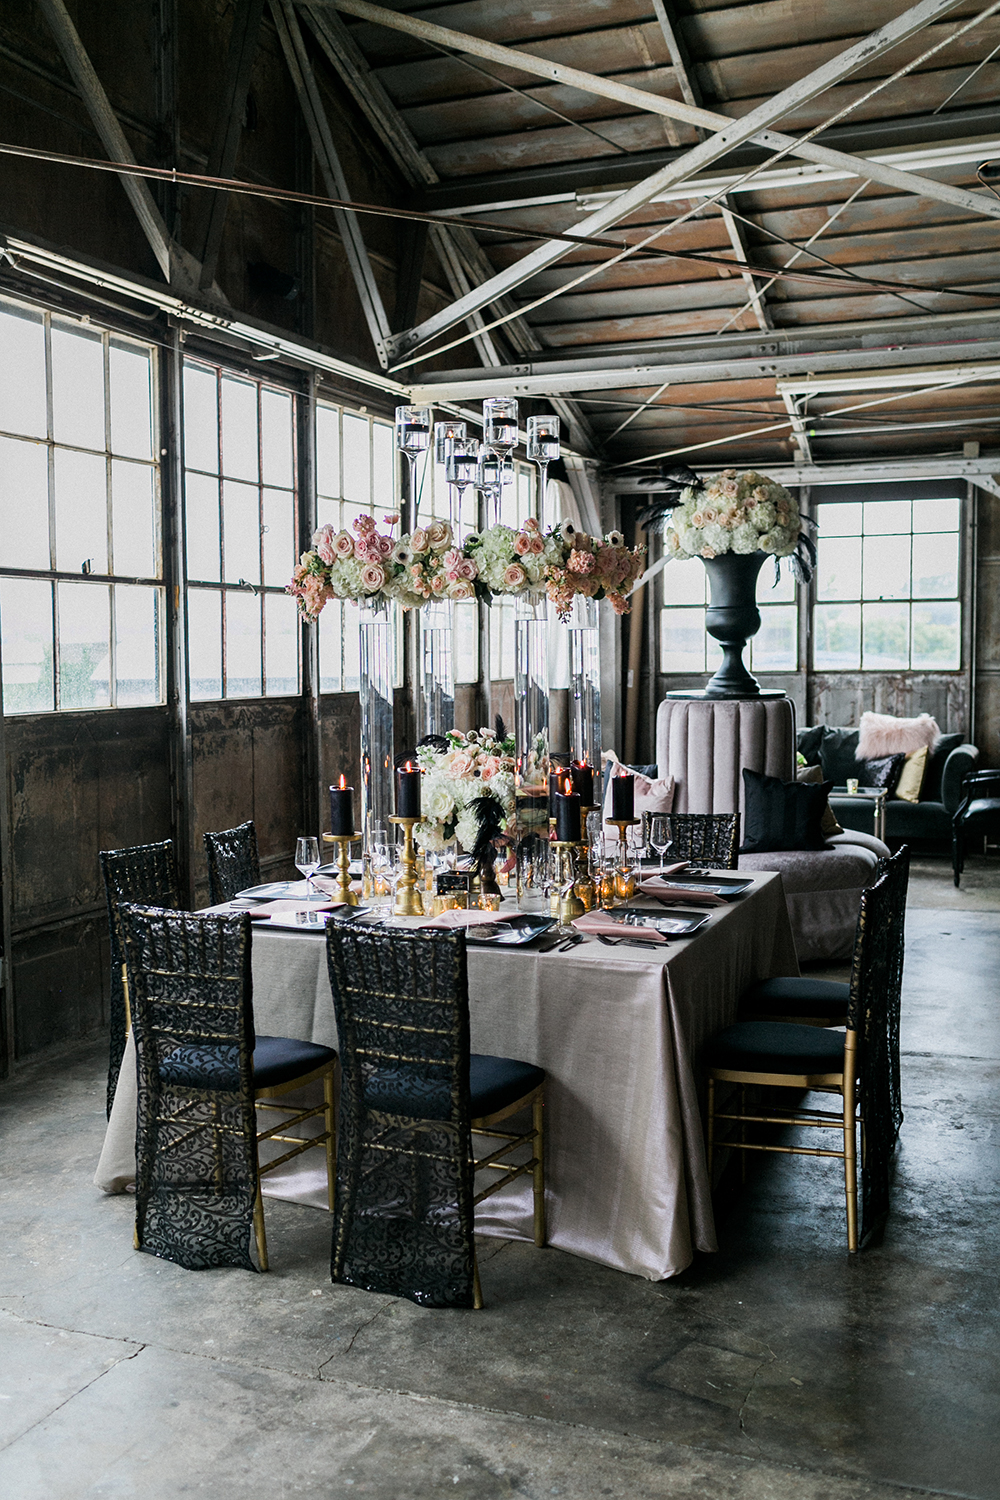 industrial glam wedding - photo by Alexis June Weddings http://ruffledblog.com/industrial-glam-wedding-inspiration